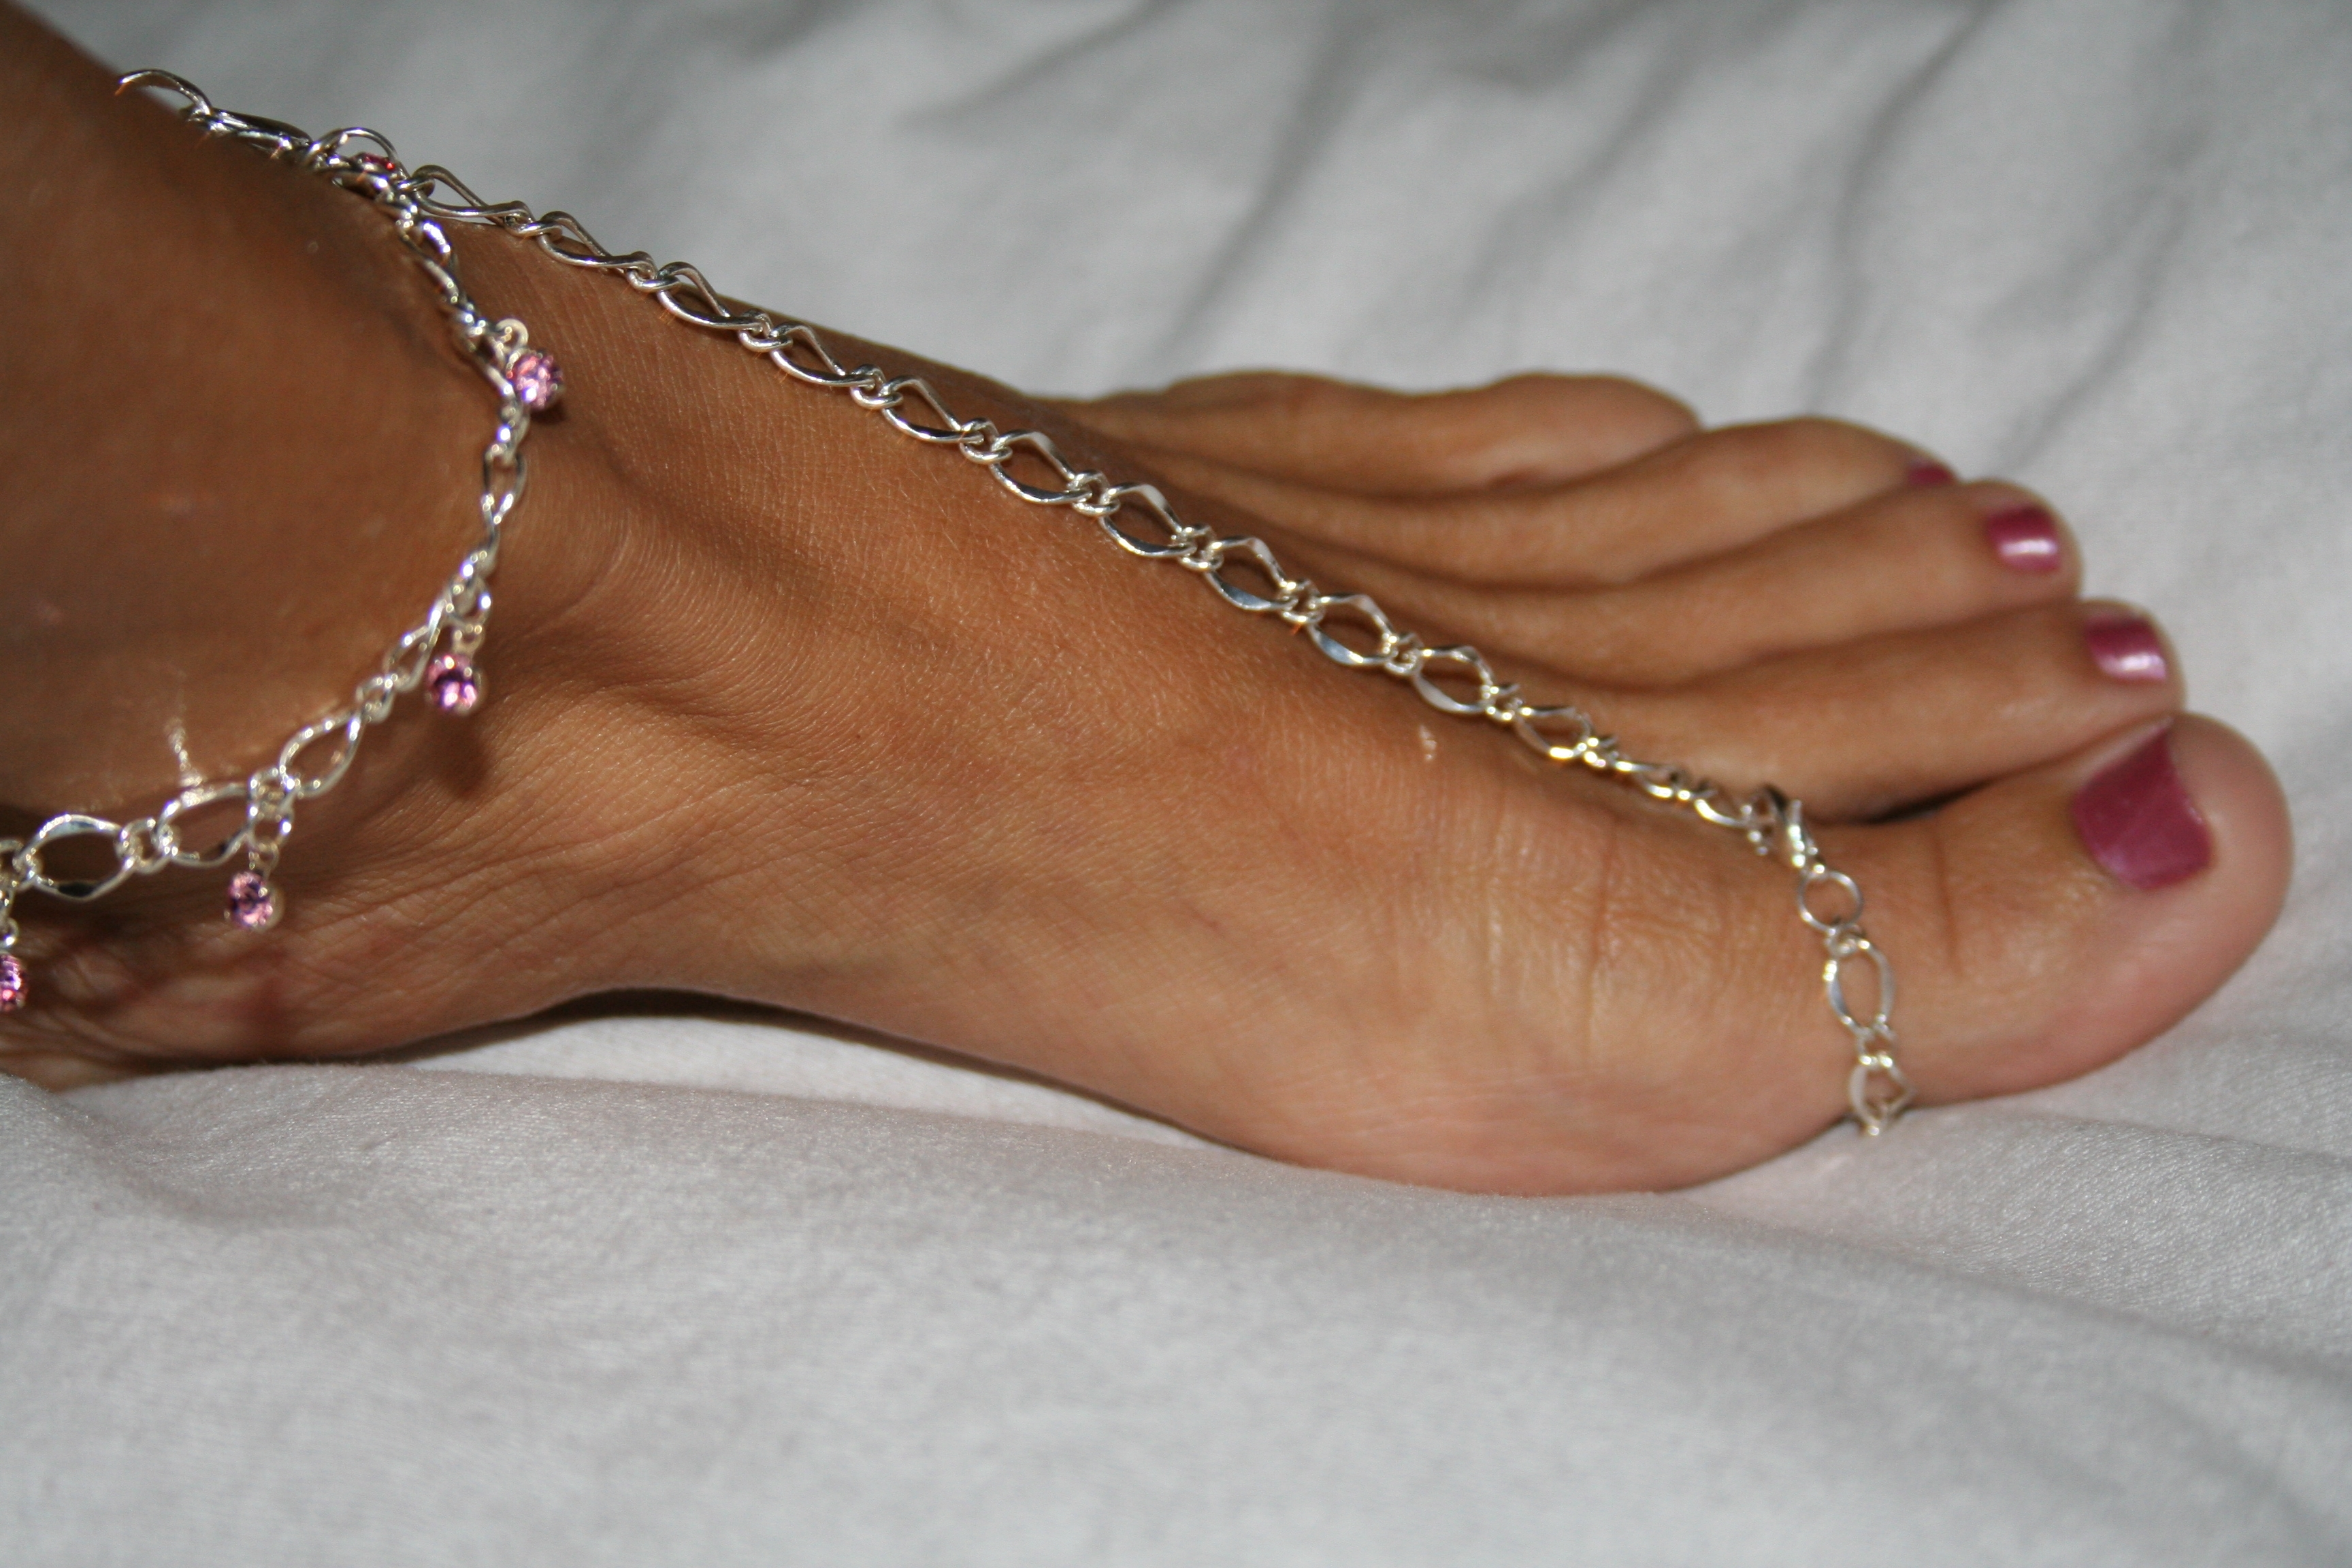 Pink Toe Ring And Ankle Bracelet, Florida Flops Within Most Recent Ankle Bracelet Toe Rings (Gallery 5 of 25)